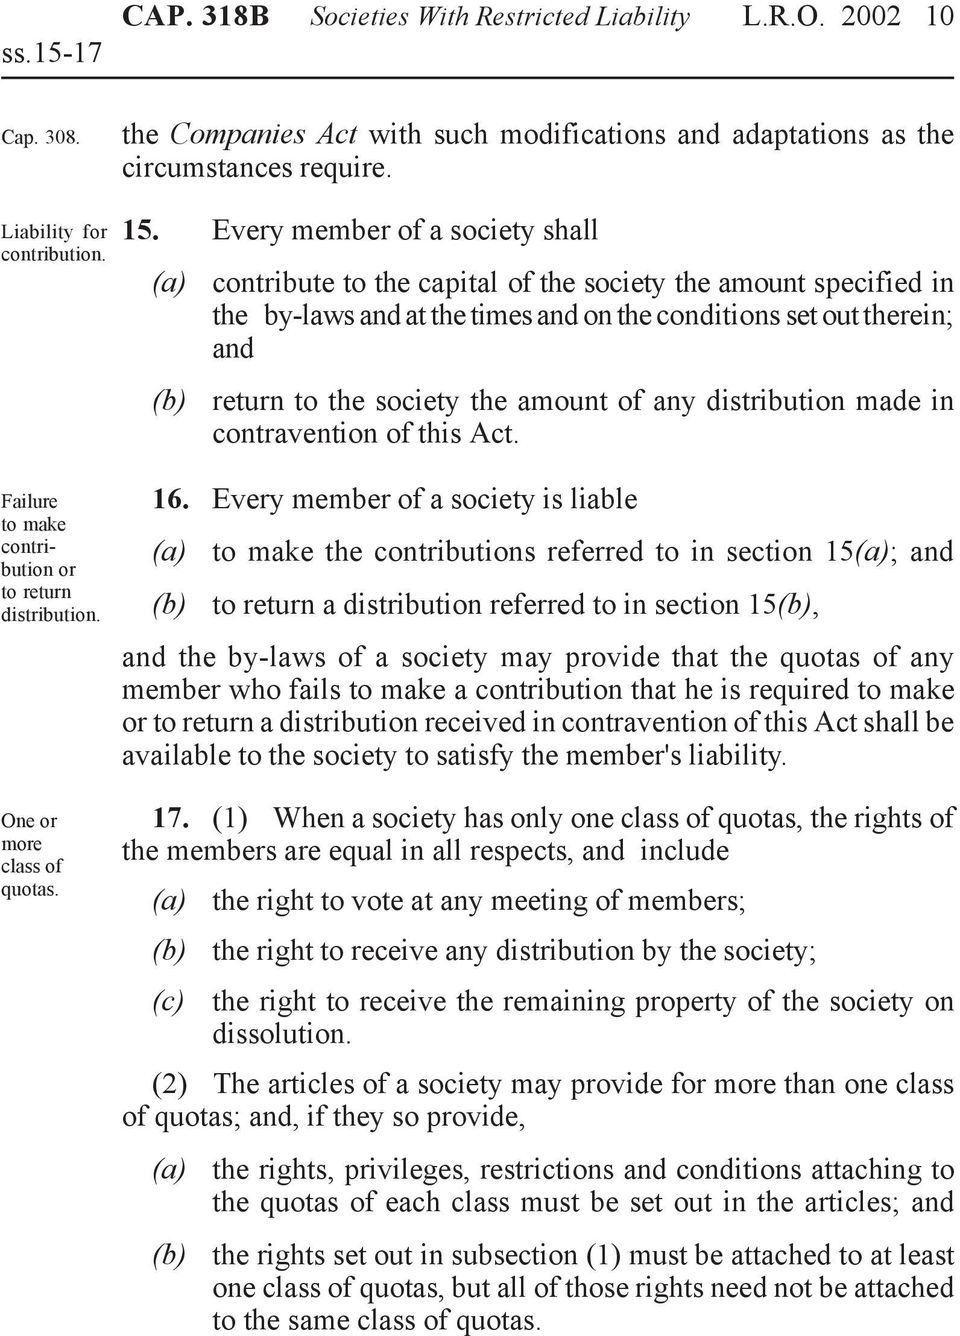 Every member of a society shall contribute to the capital of the society the amount specified in the by-laws and at the times and on the conditions set out therein; and return to the society the